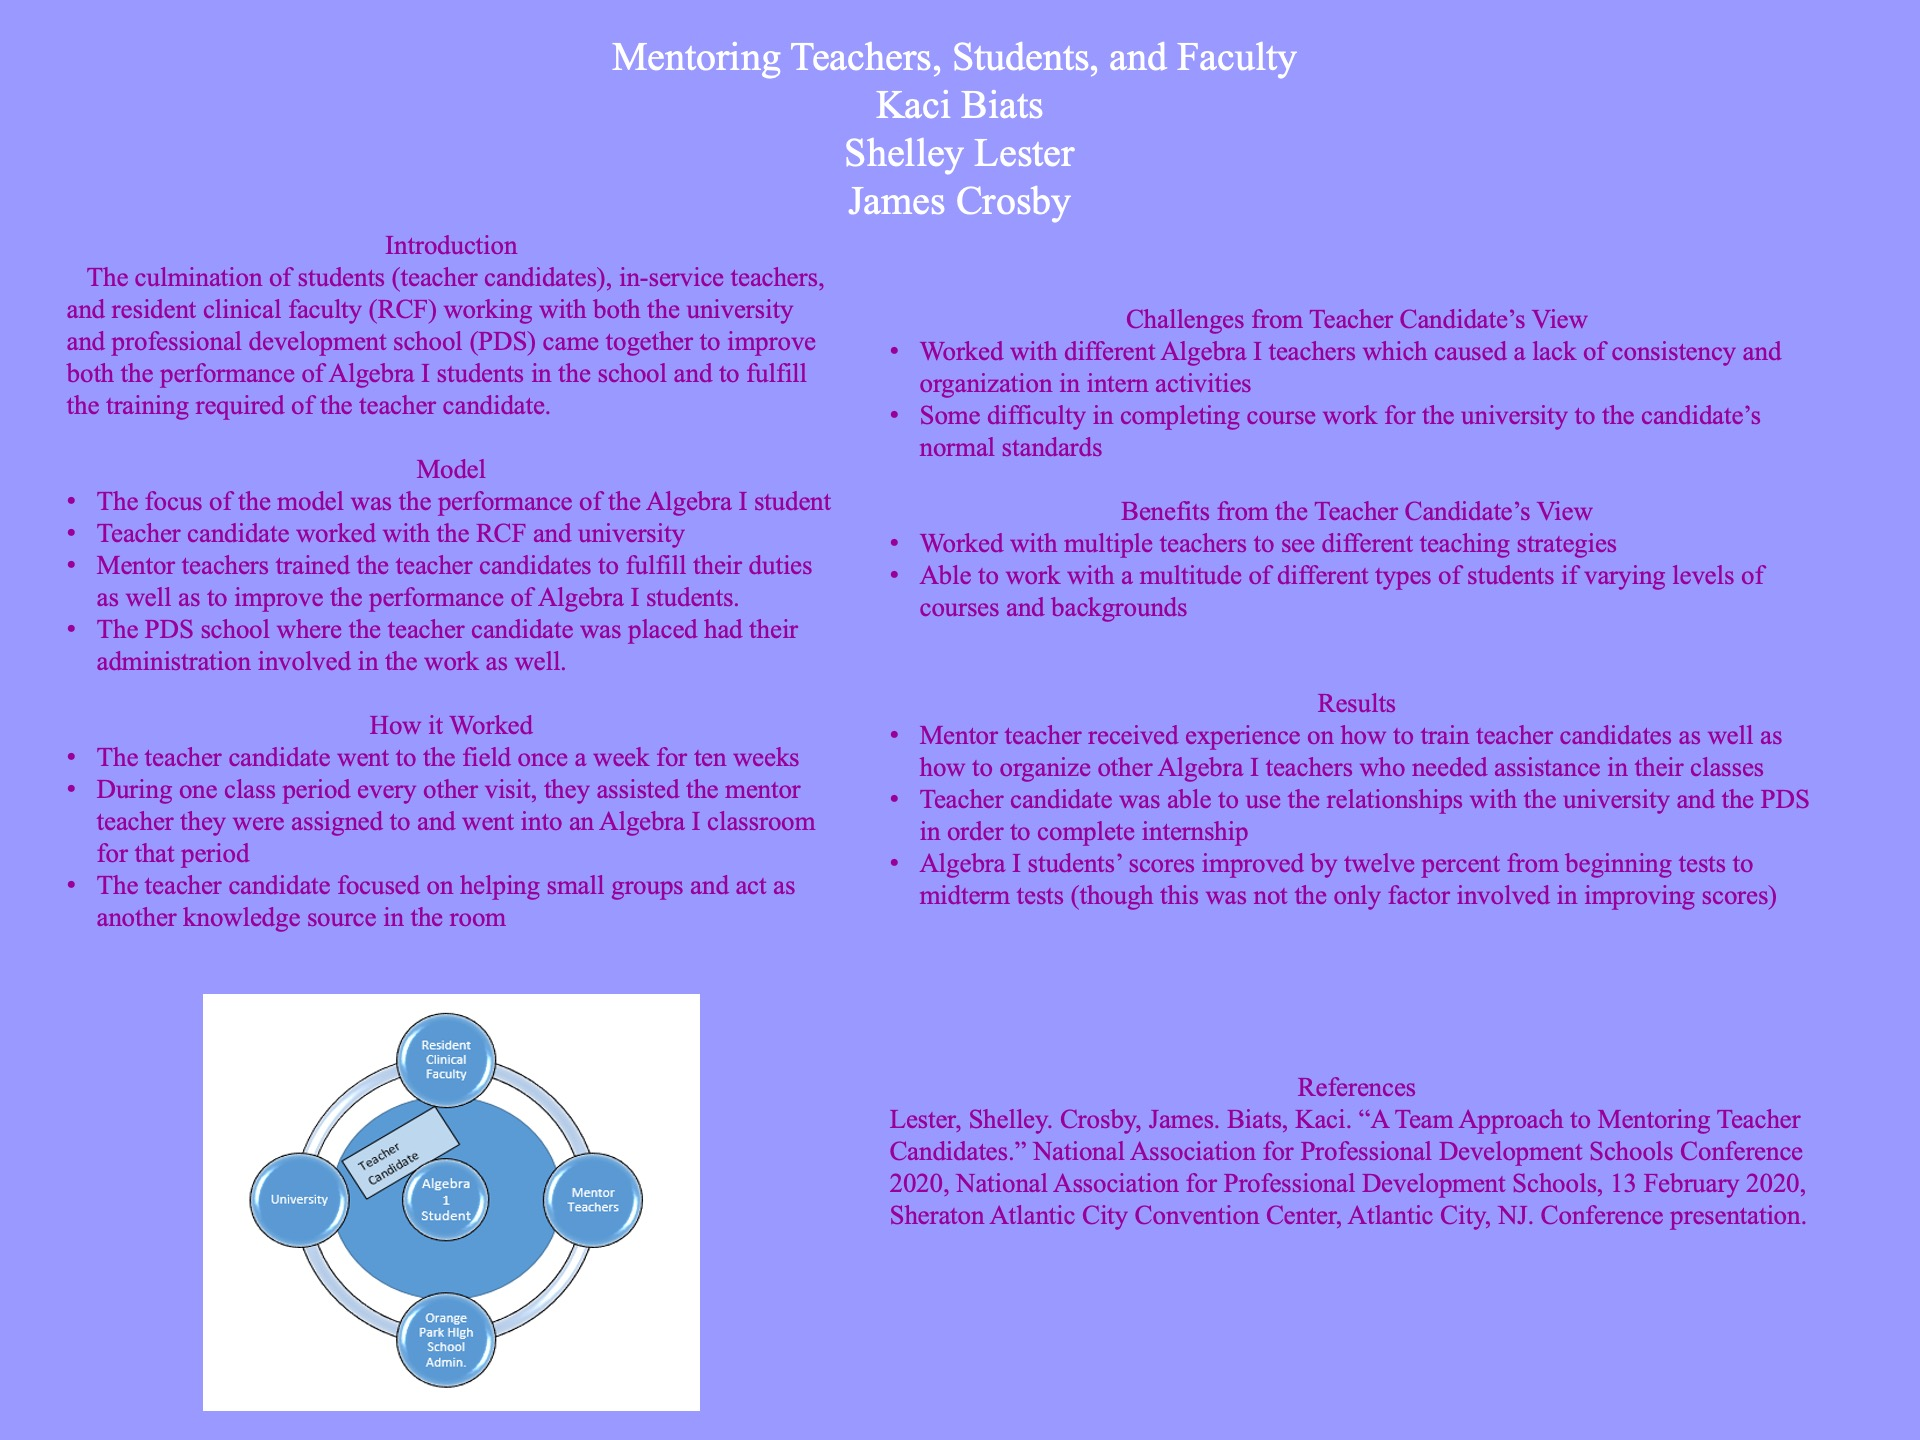 Mentoring Teachers, Students, and Faculty poster